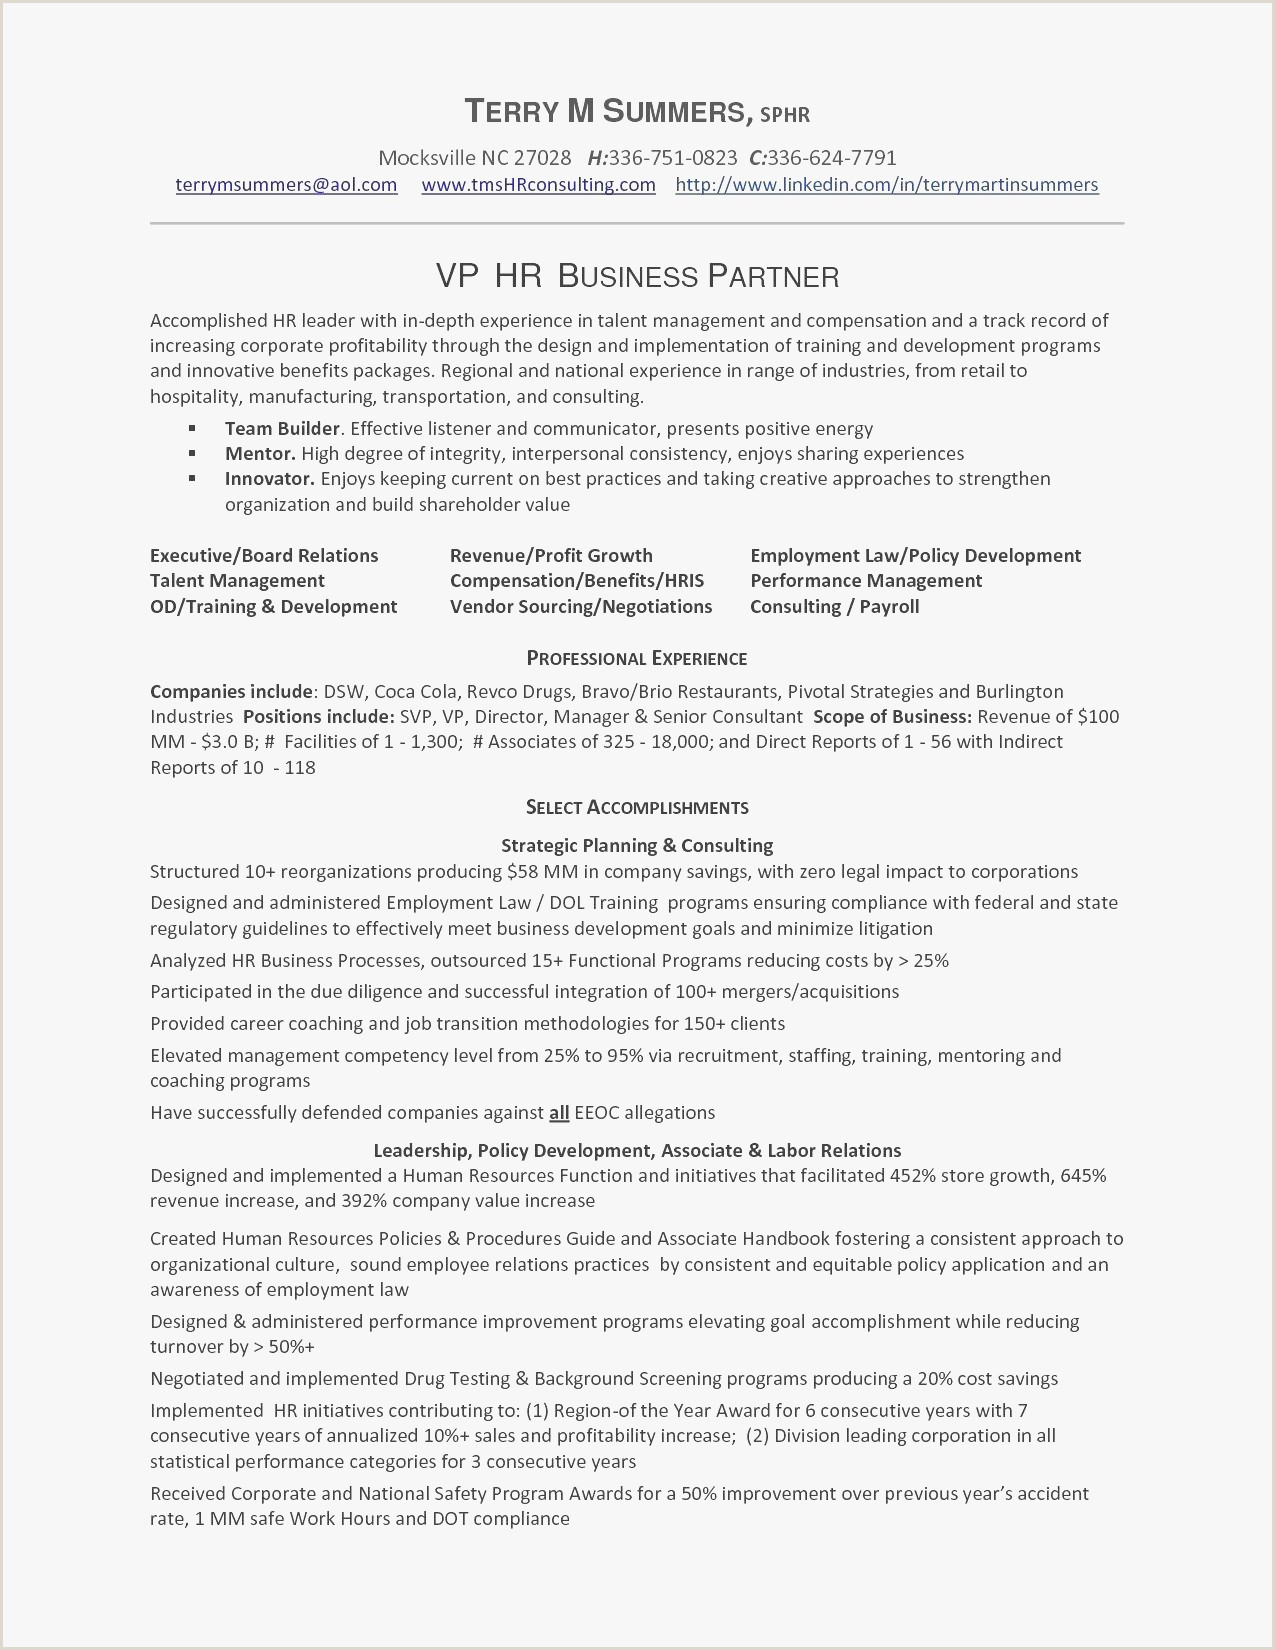 Cv format for Cleaning Job Best Resume Samples for Cleaning Job